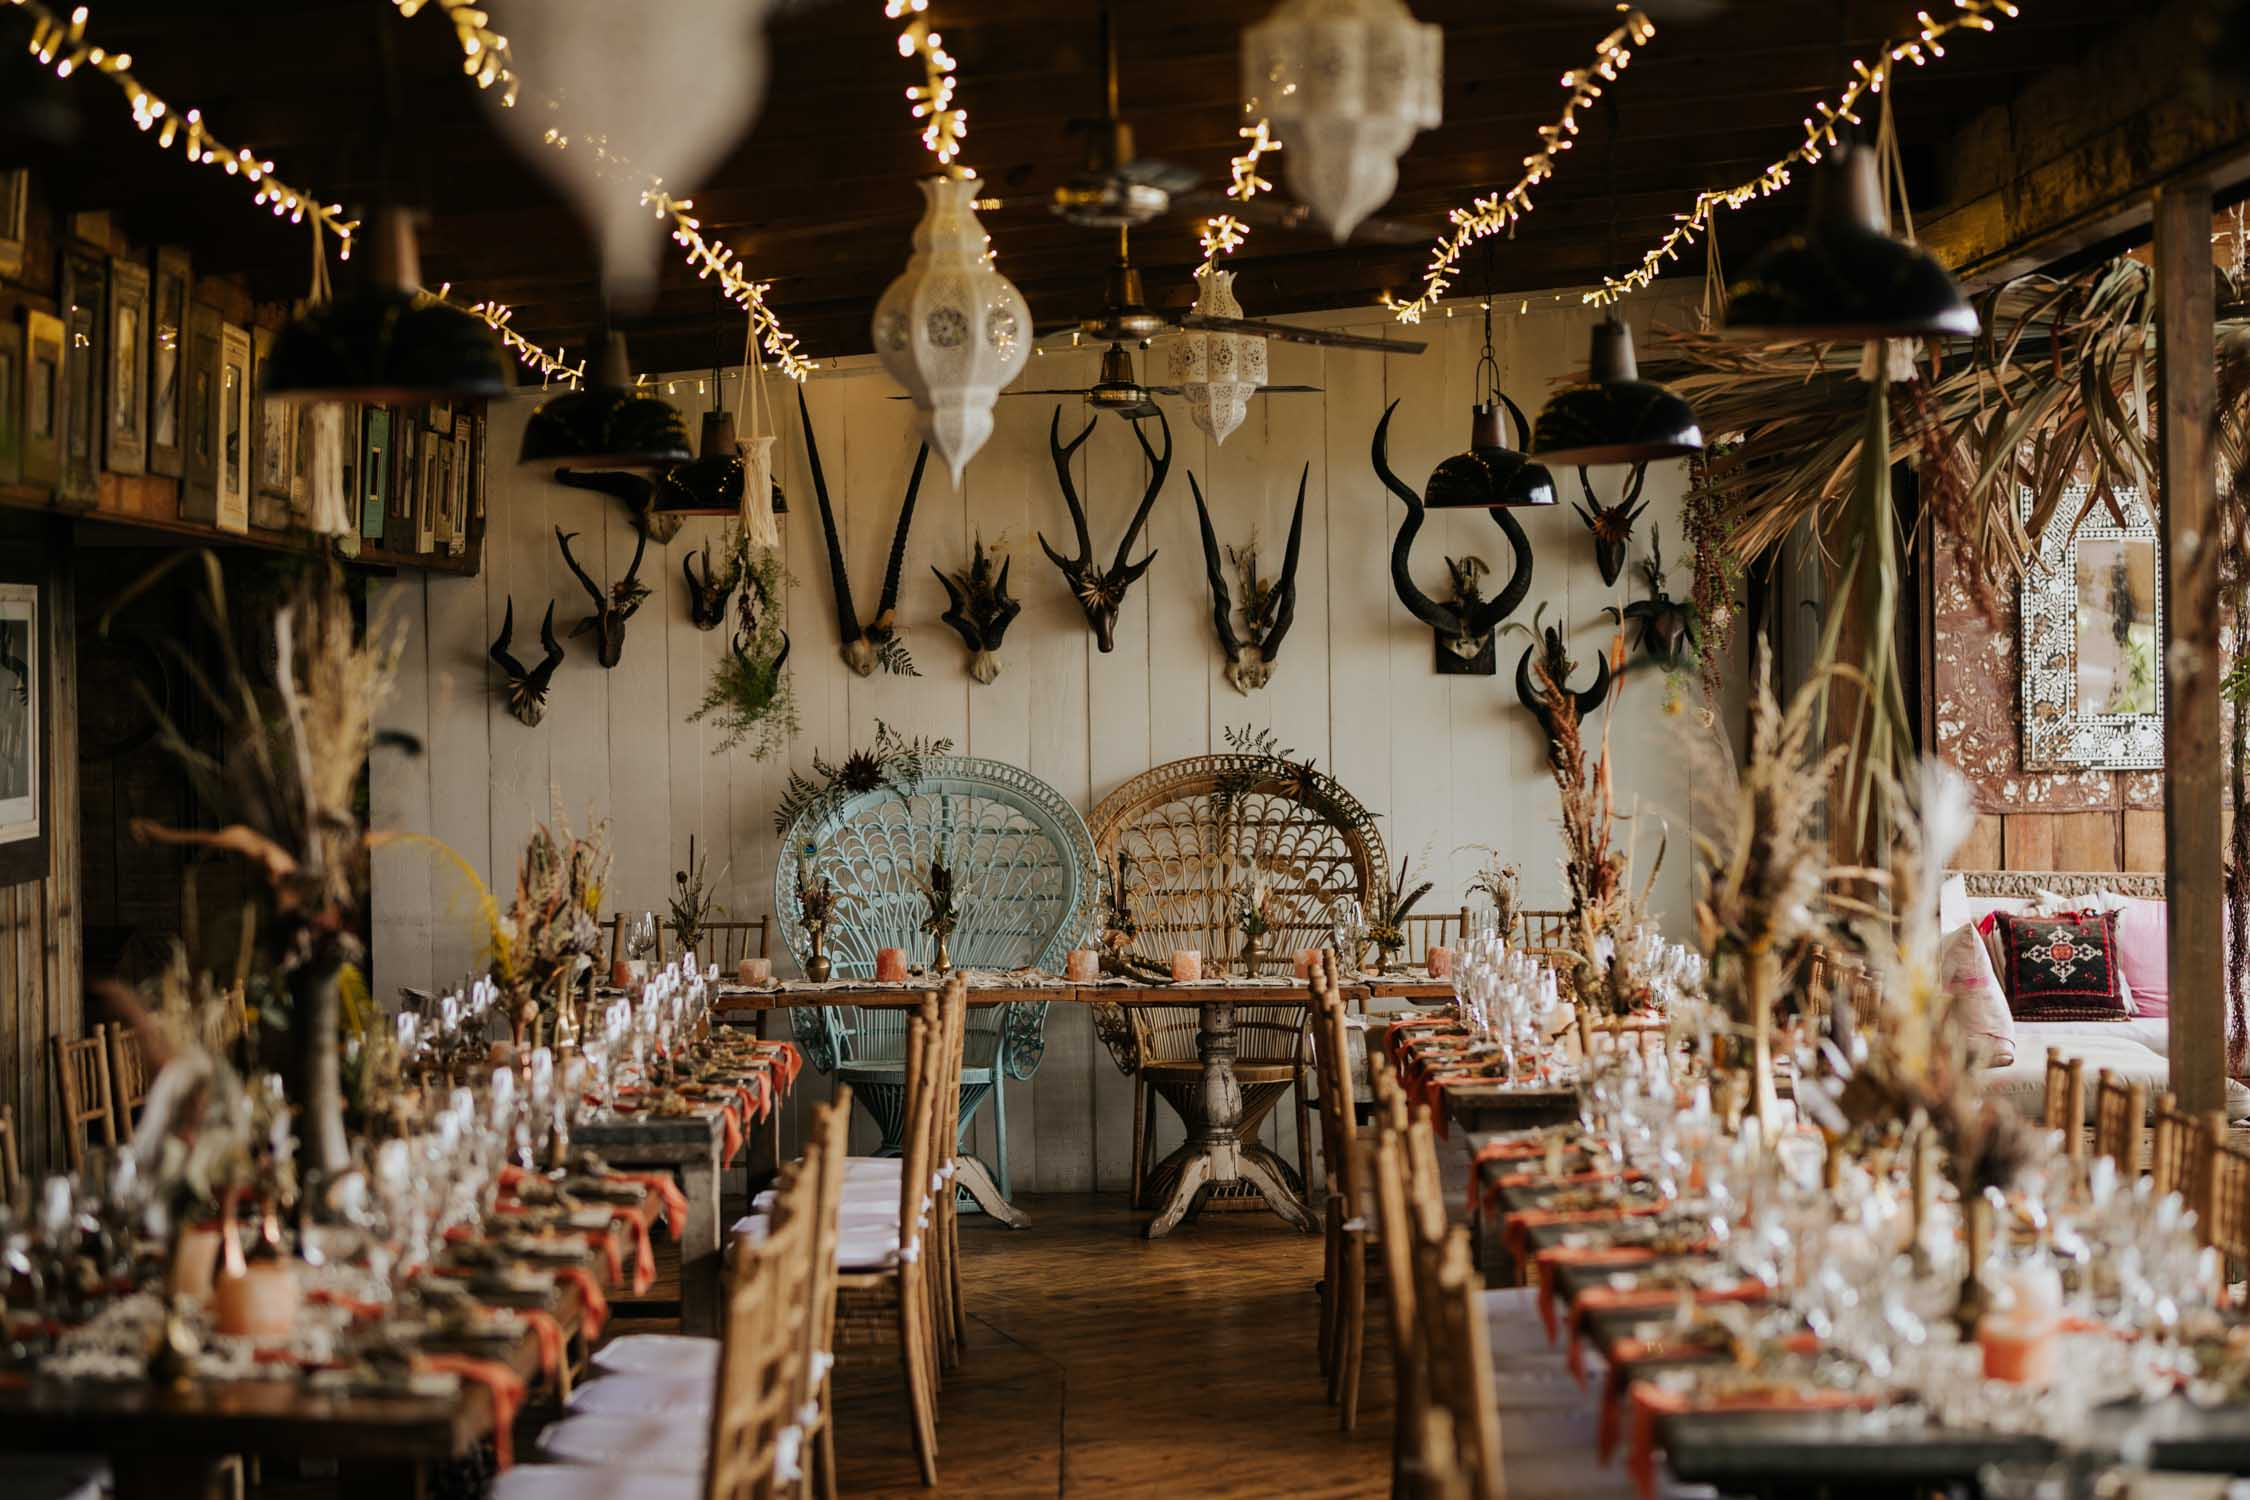 Boho inspired wedding decor of rustic wooden chairs, woven macrame table runners, feather and dried flower arrangements, skull table numbers, gemstones and Bali Wicker Peacock Chairs